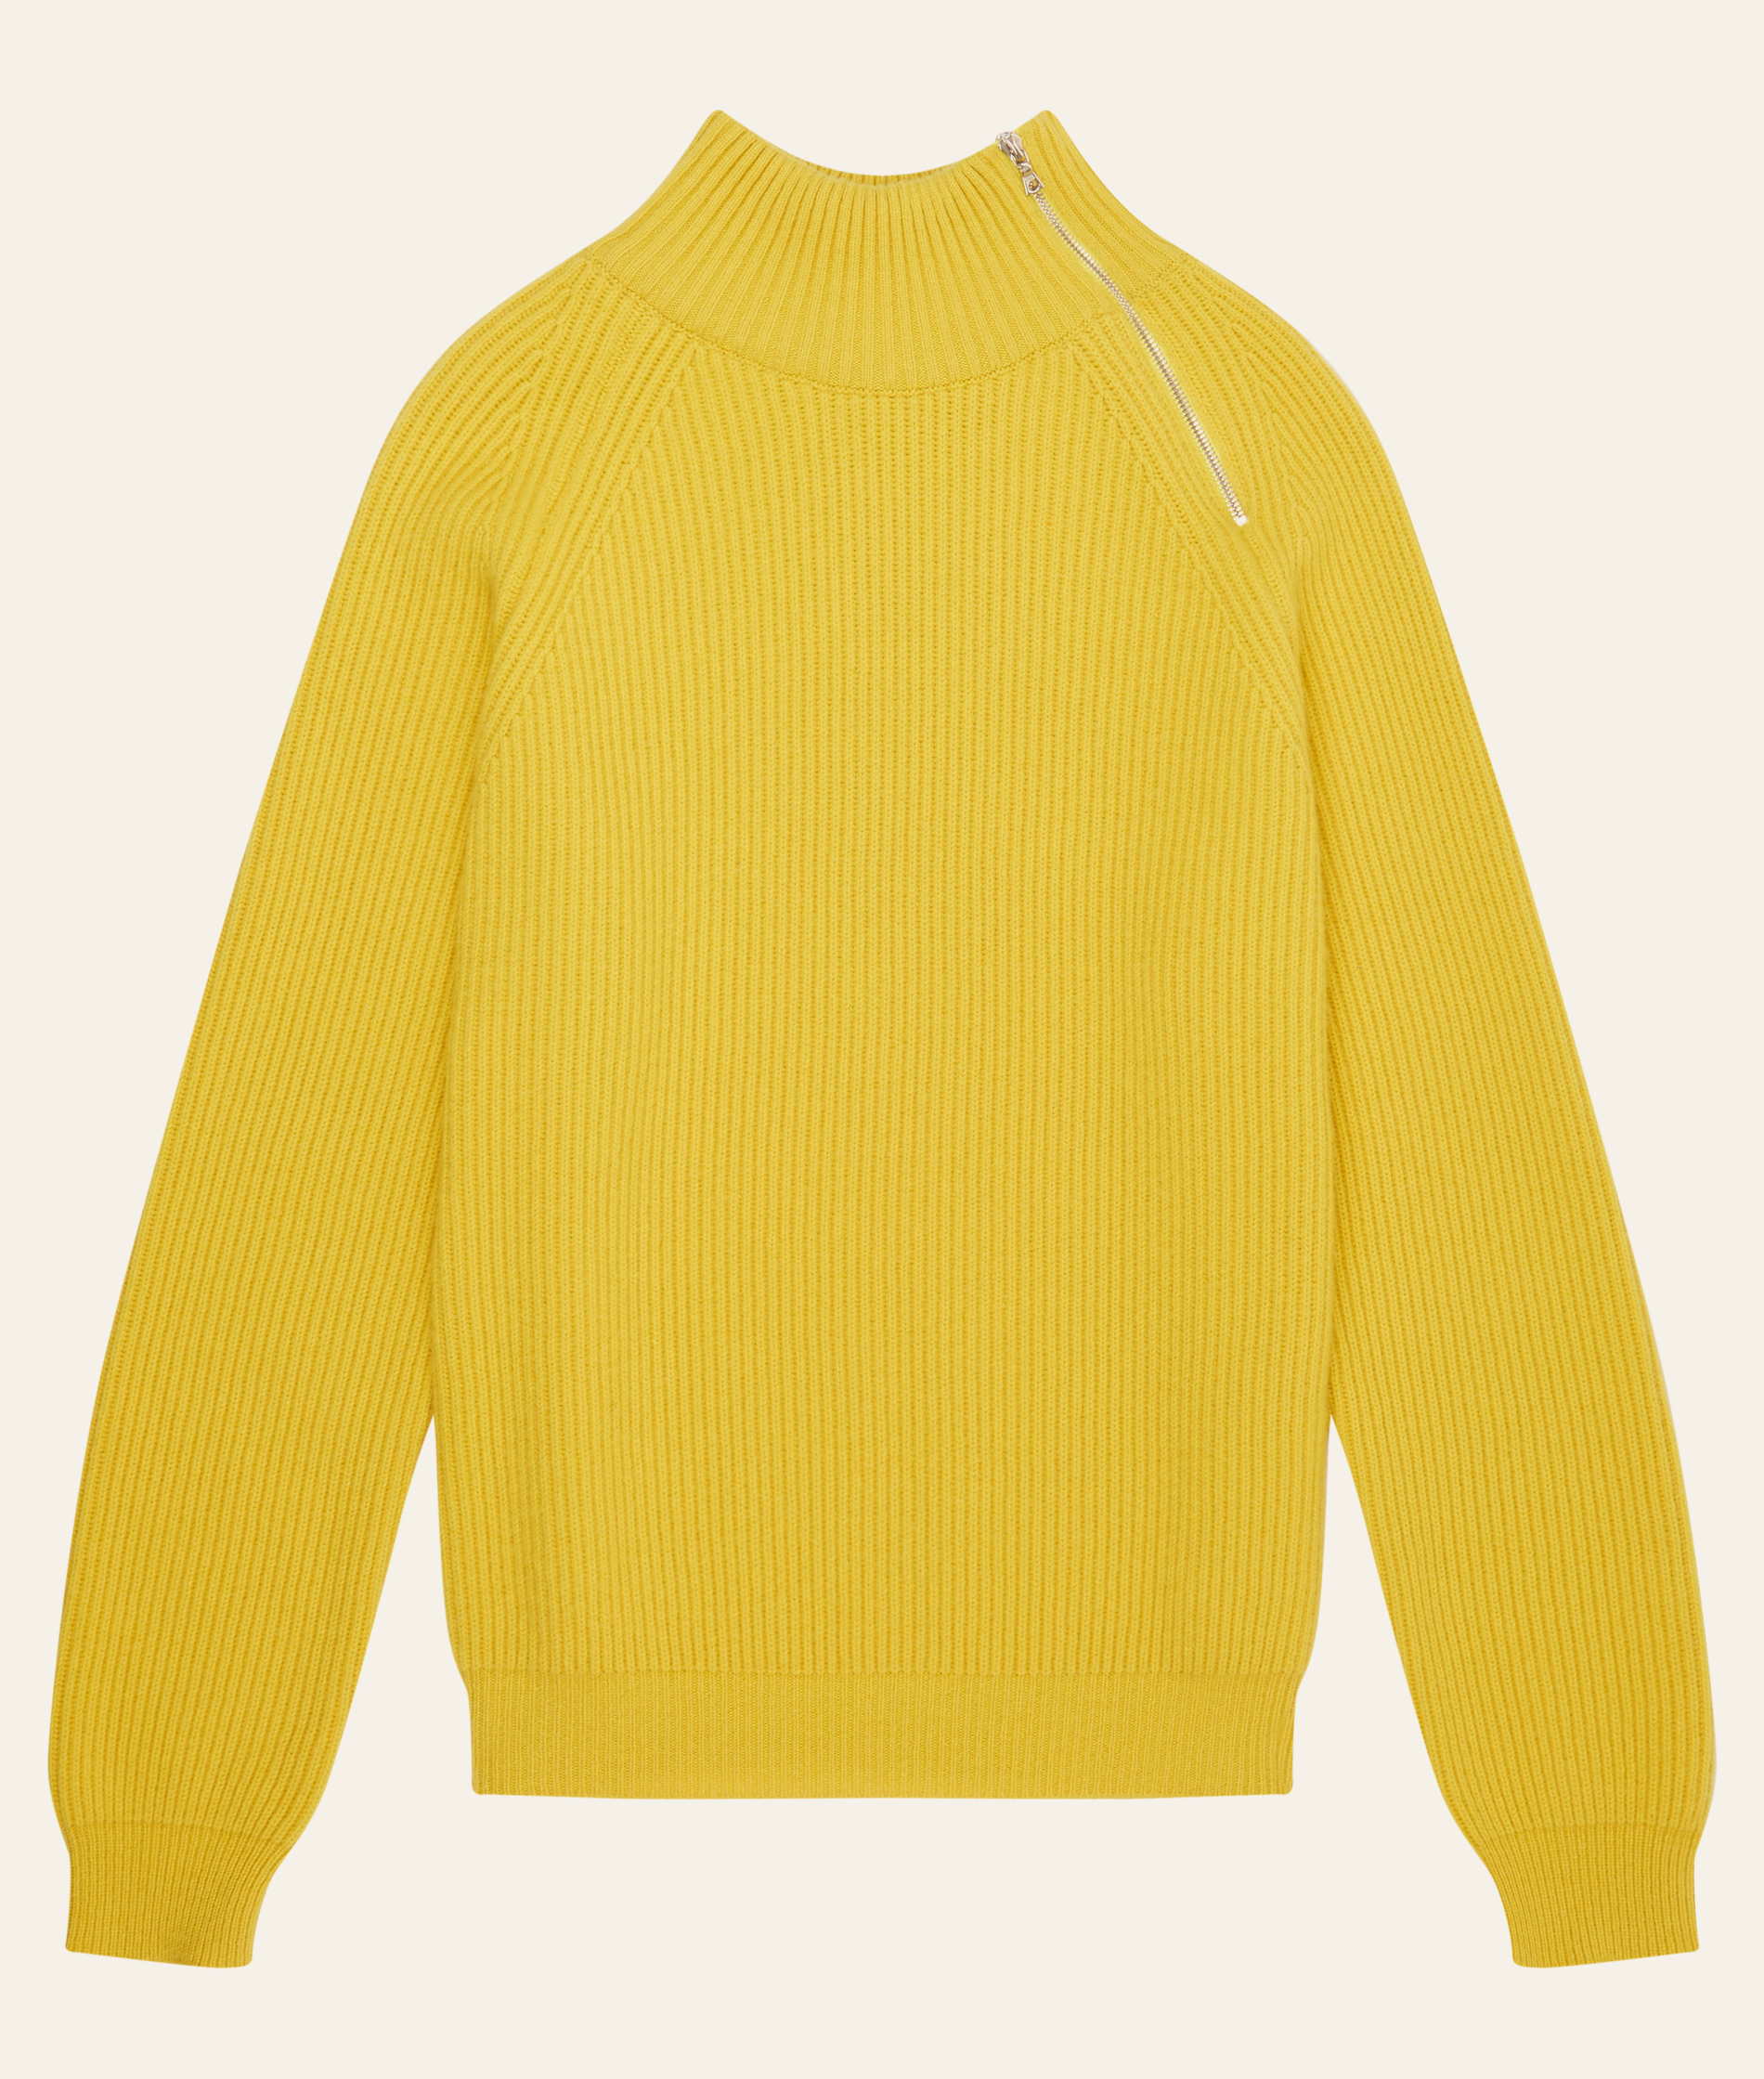 Connolly Cashmere Yellow Driving Sweater